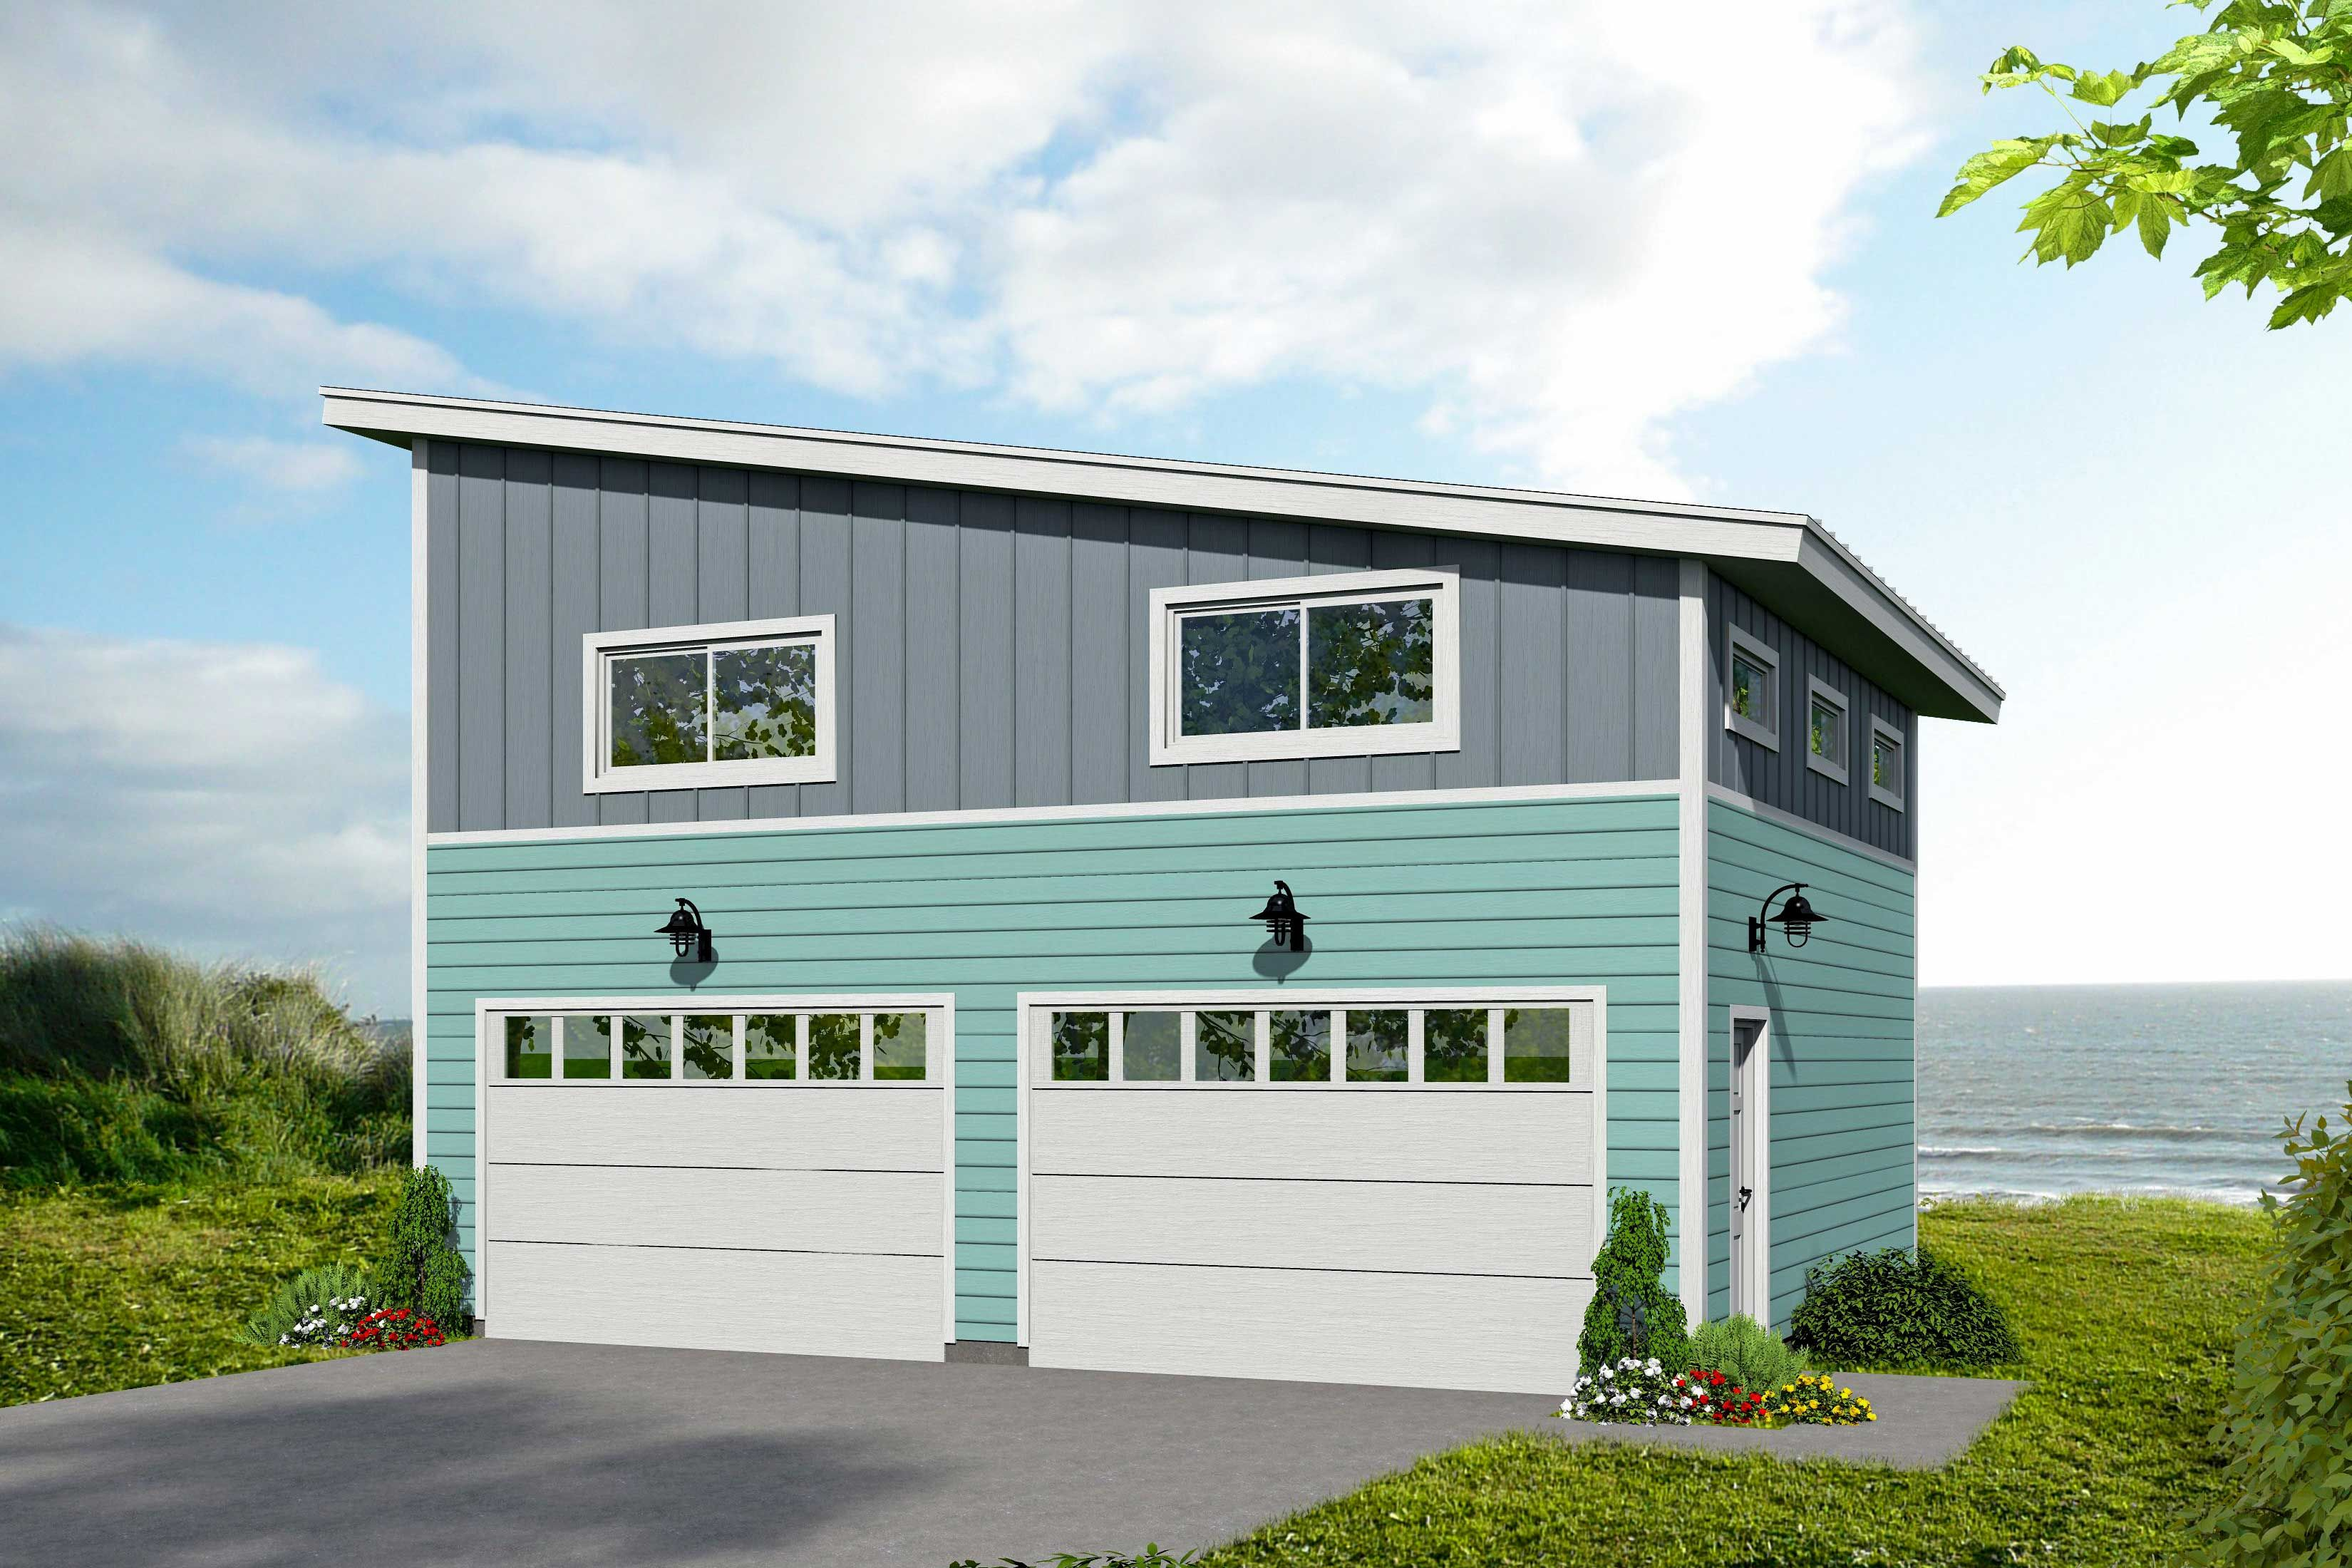 Plan 68554vr Modern Garage Plan With Upstairs Loft Space Garage Plans With Loft Modern Garage Carriage House Plans